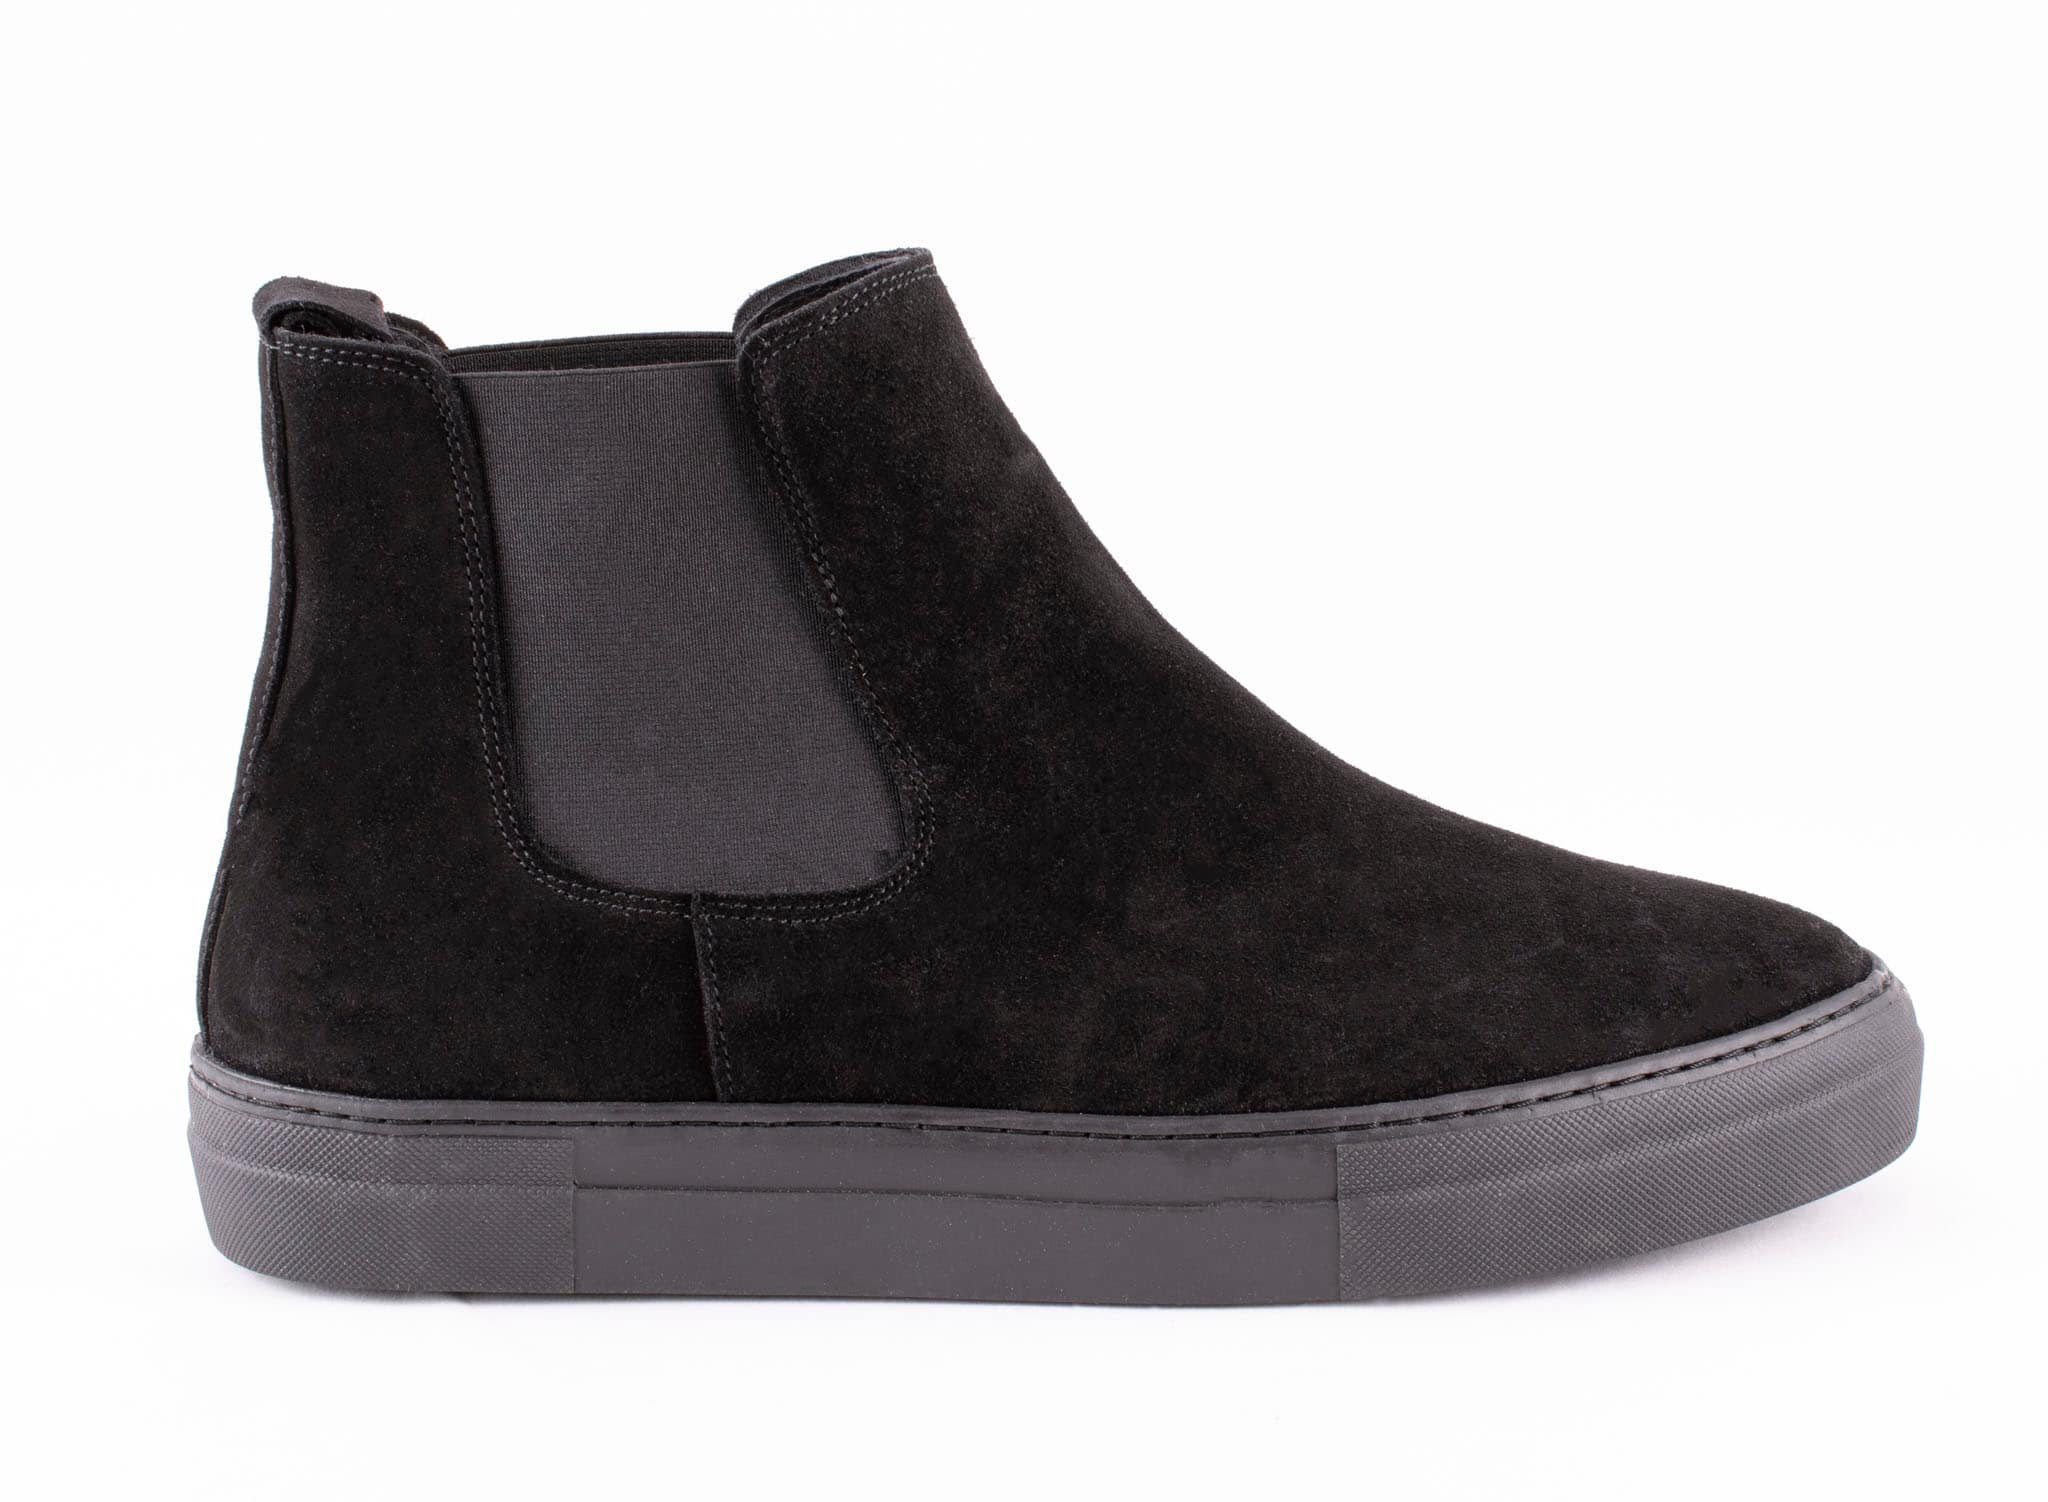 Karl boots